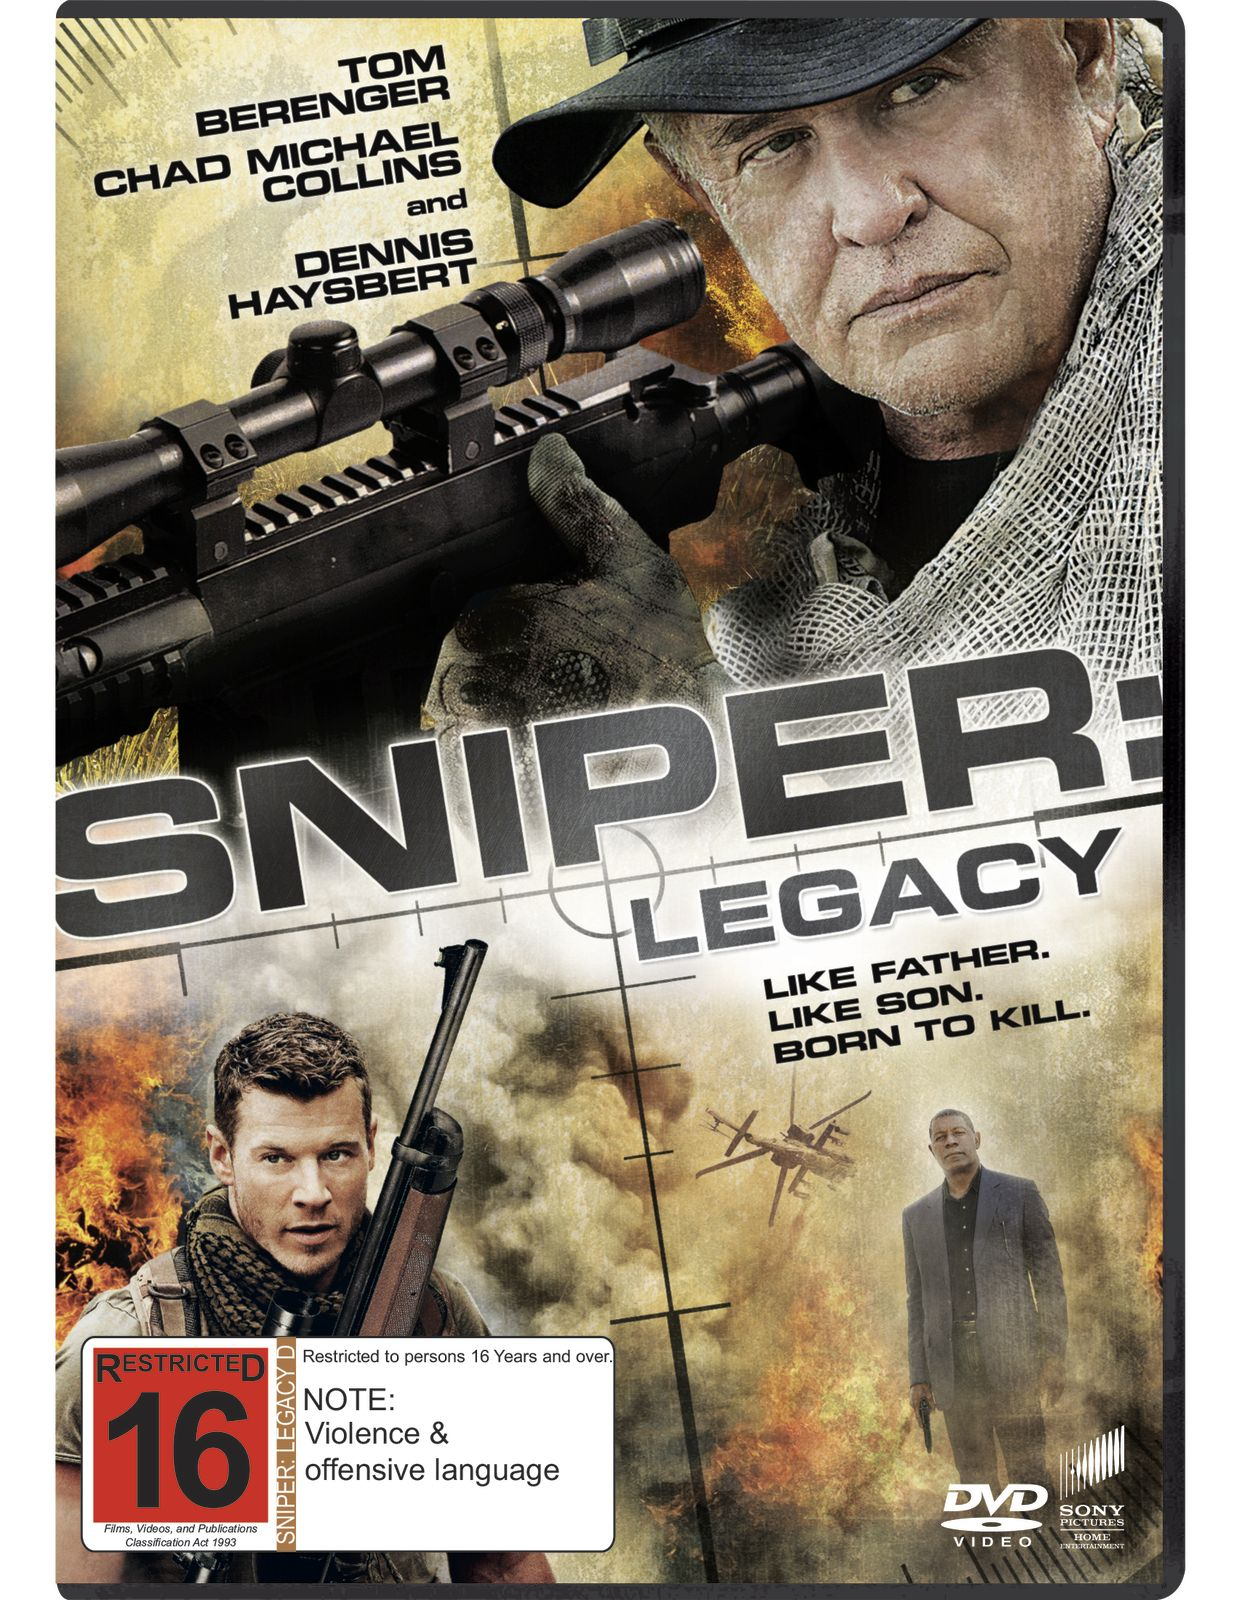 Sniper Ghost Shooter Turkce Altyazili Hd Izle Full Movies Online Free Free Movies Online Streaming Movies